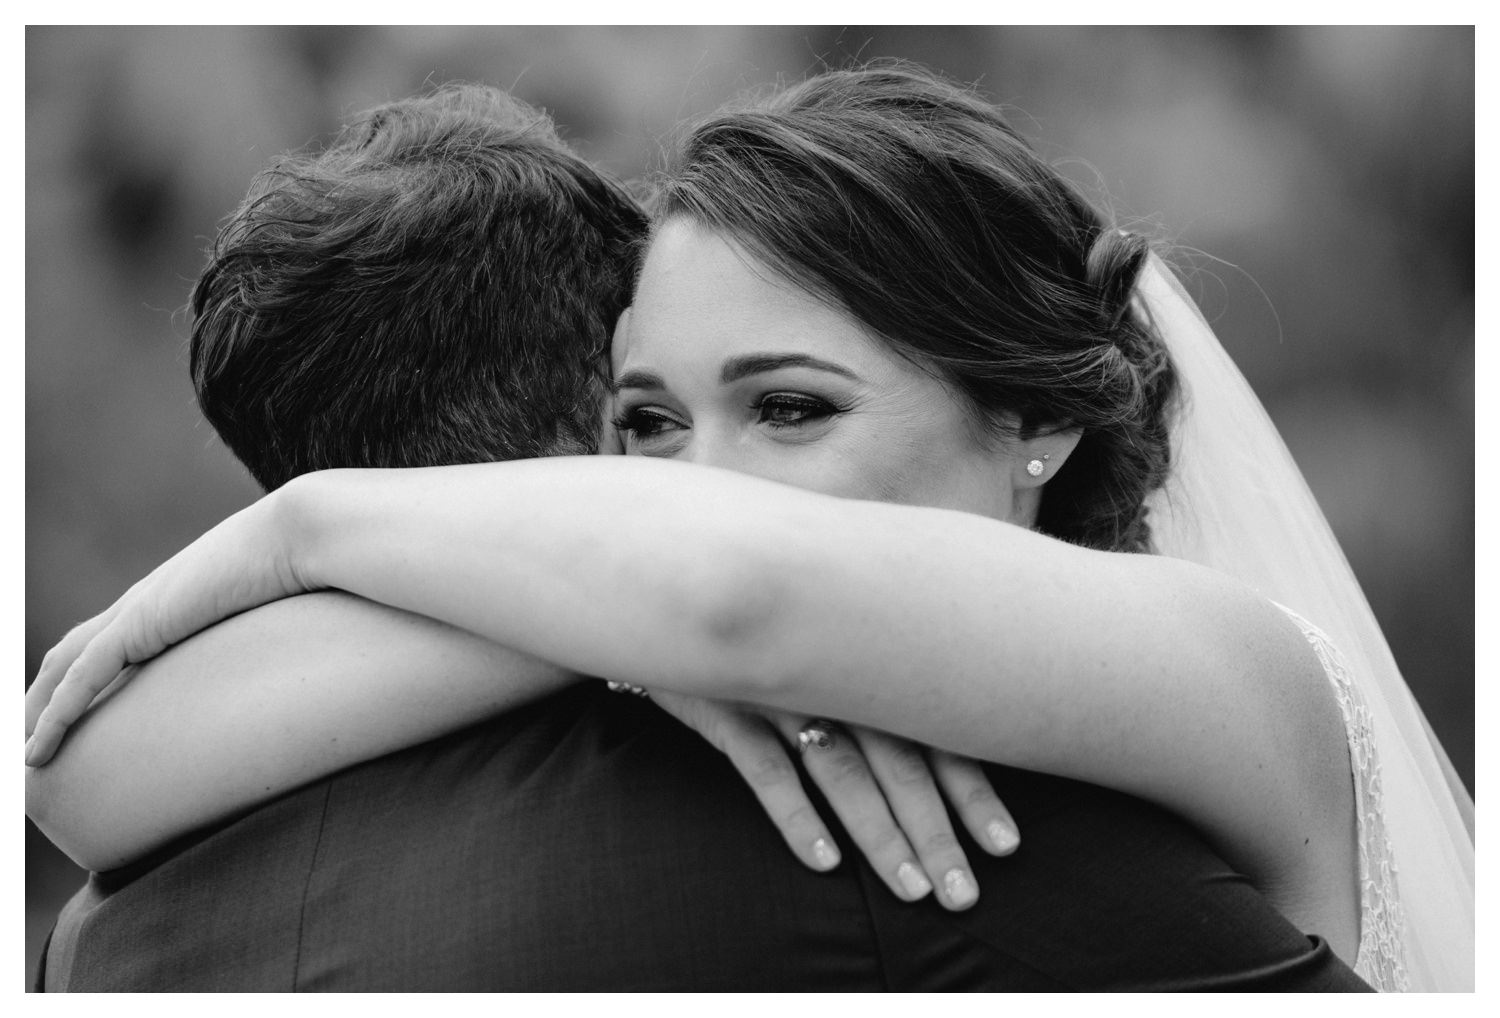 a bride and groom embrace on their wedding day.